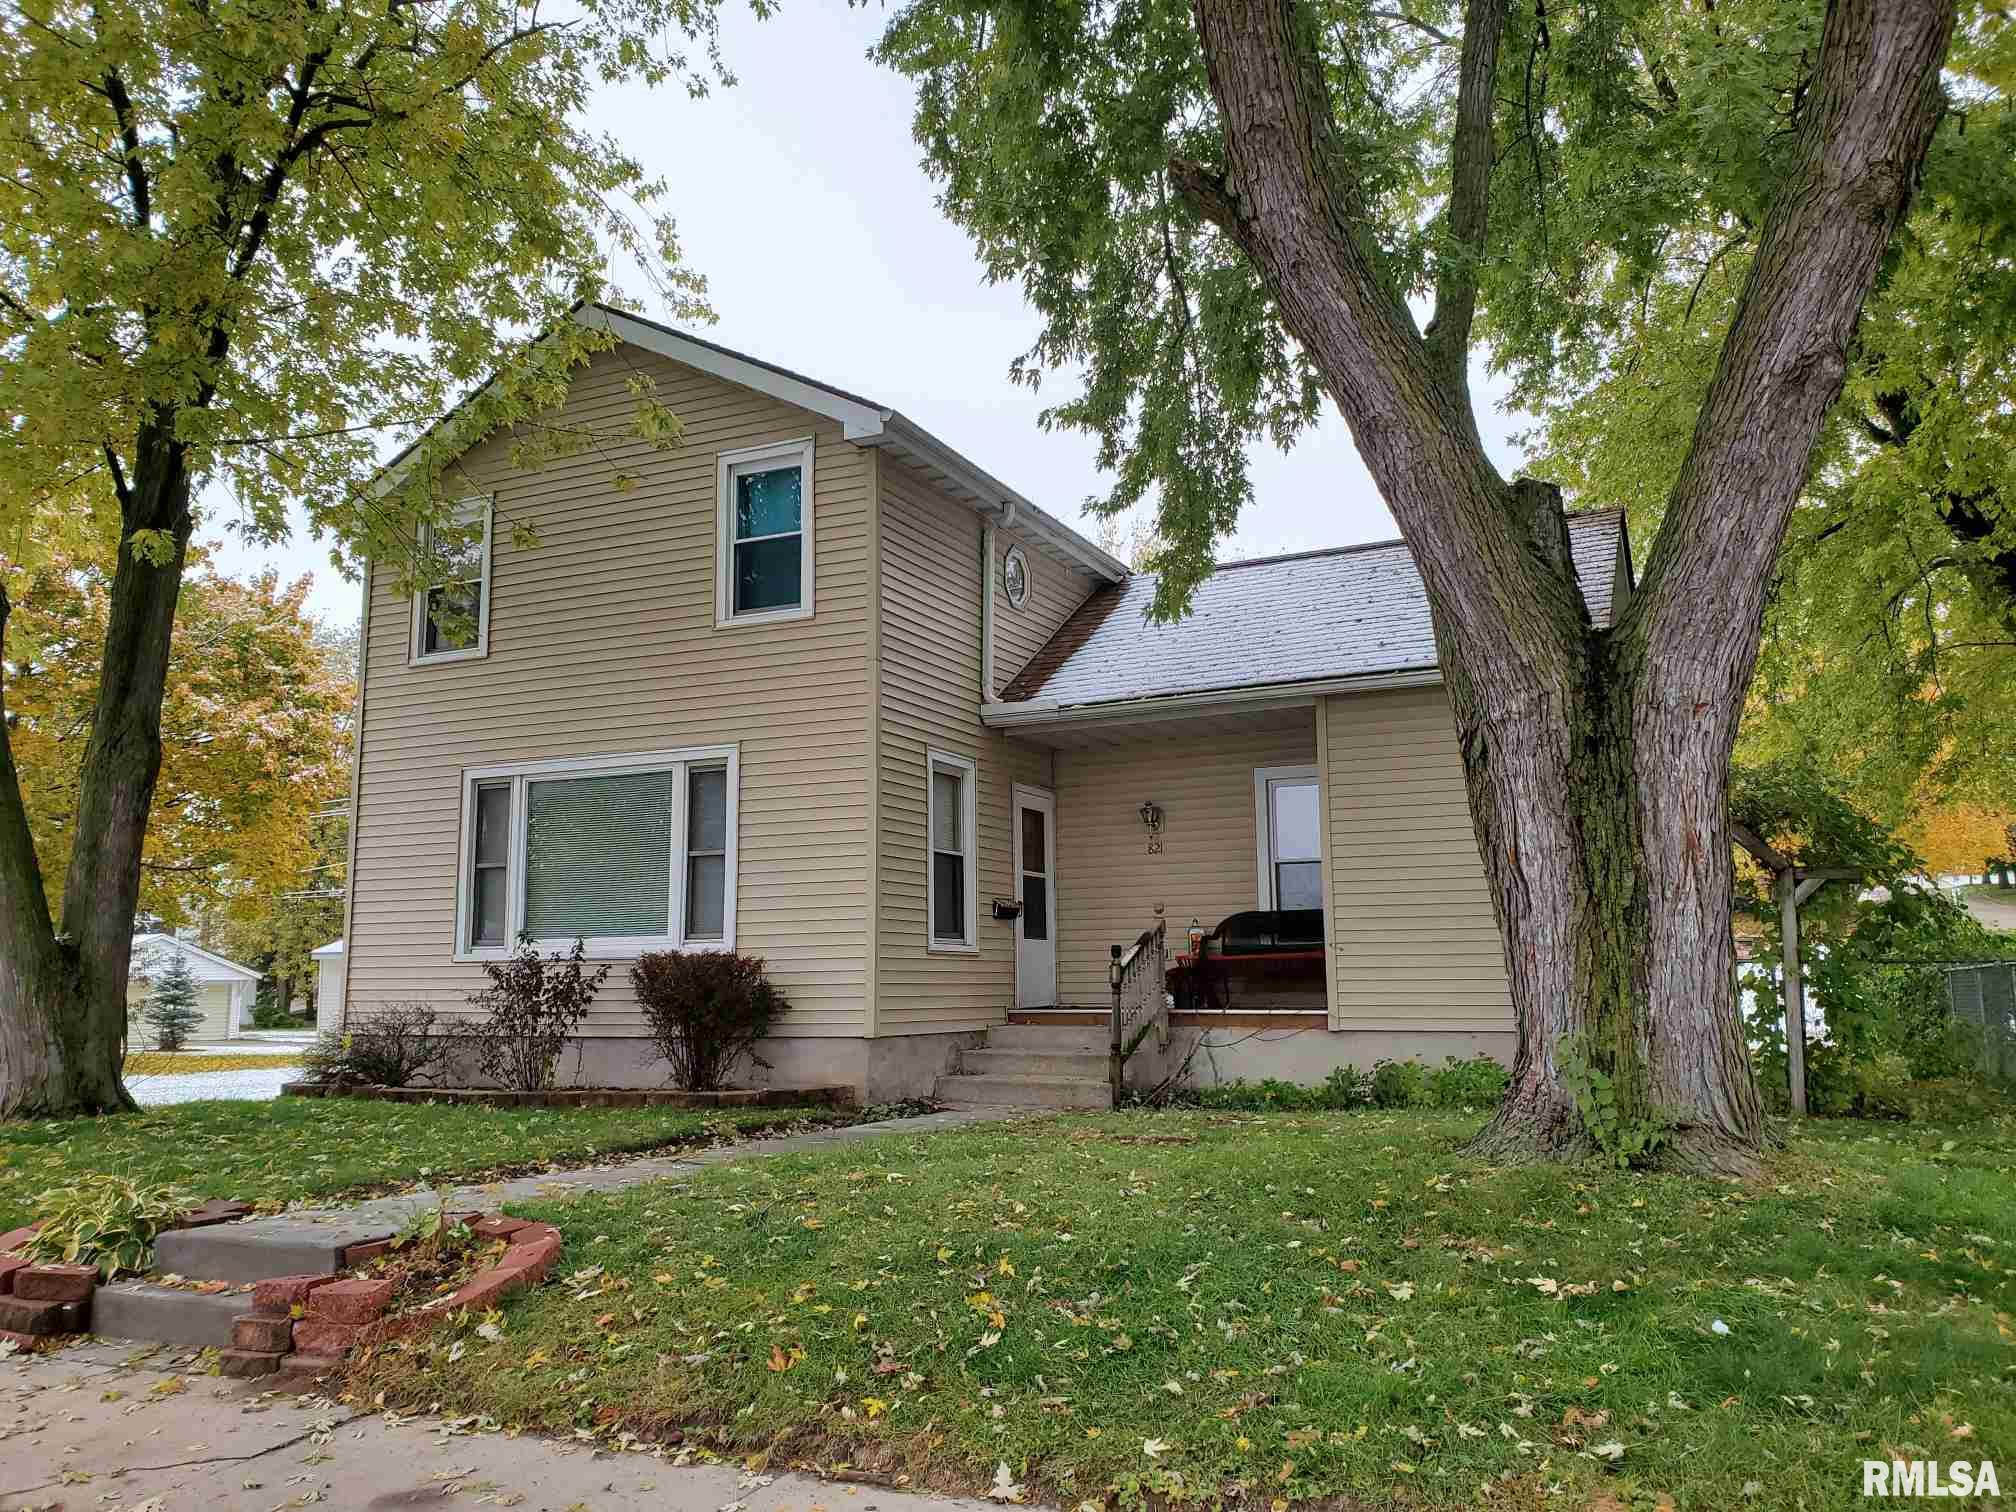 821 13TH Avenue, Fulton, IL 61252